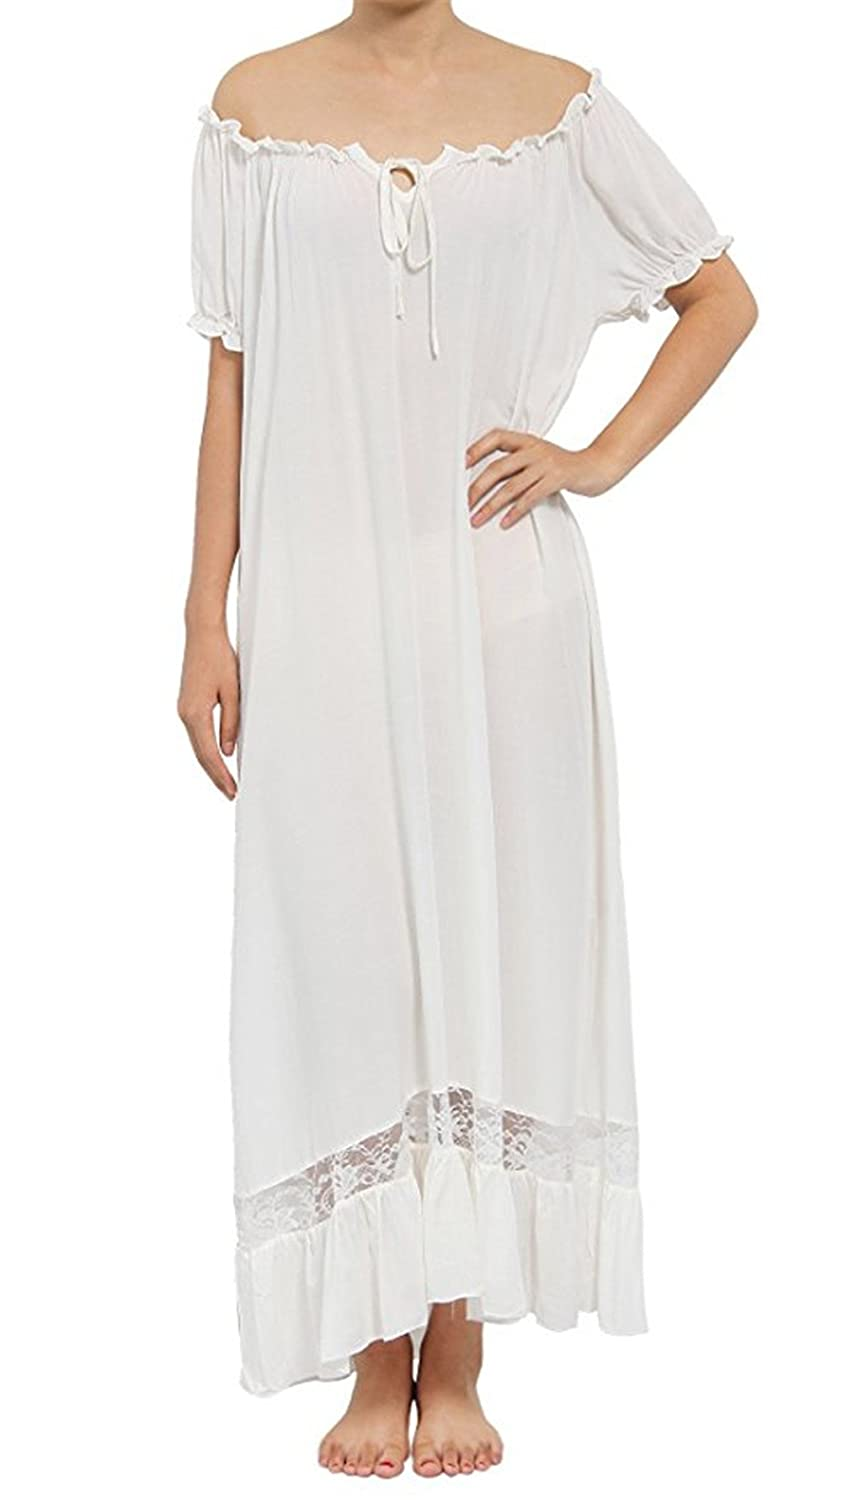 Europax Women's Cotton Off The Shoulder Short Sleeve Nightgown Victorian Nightdress